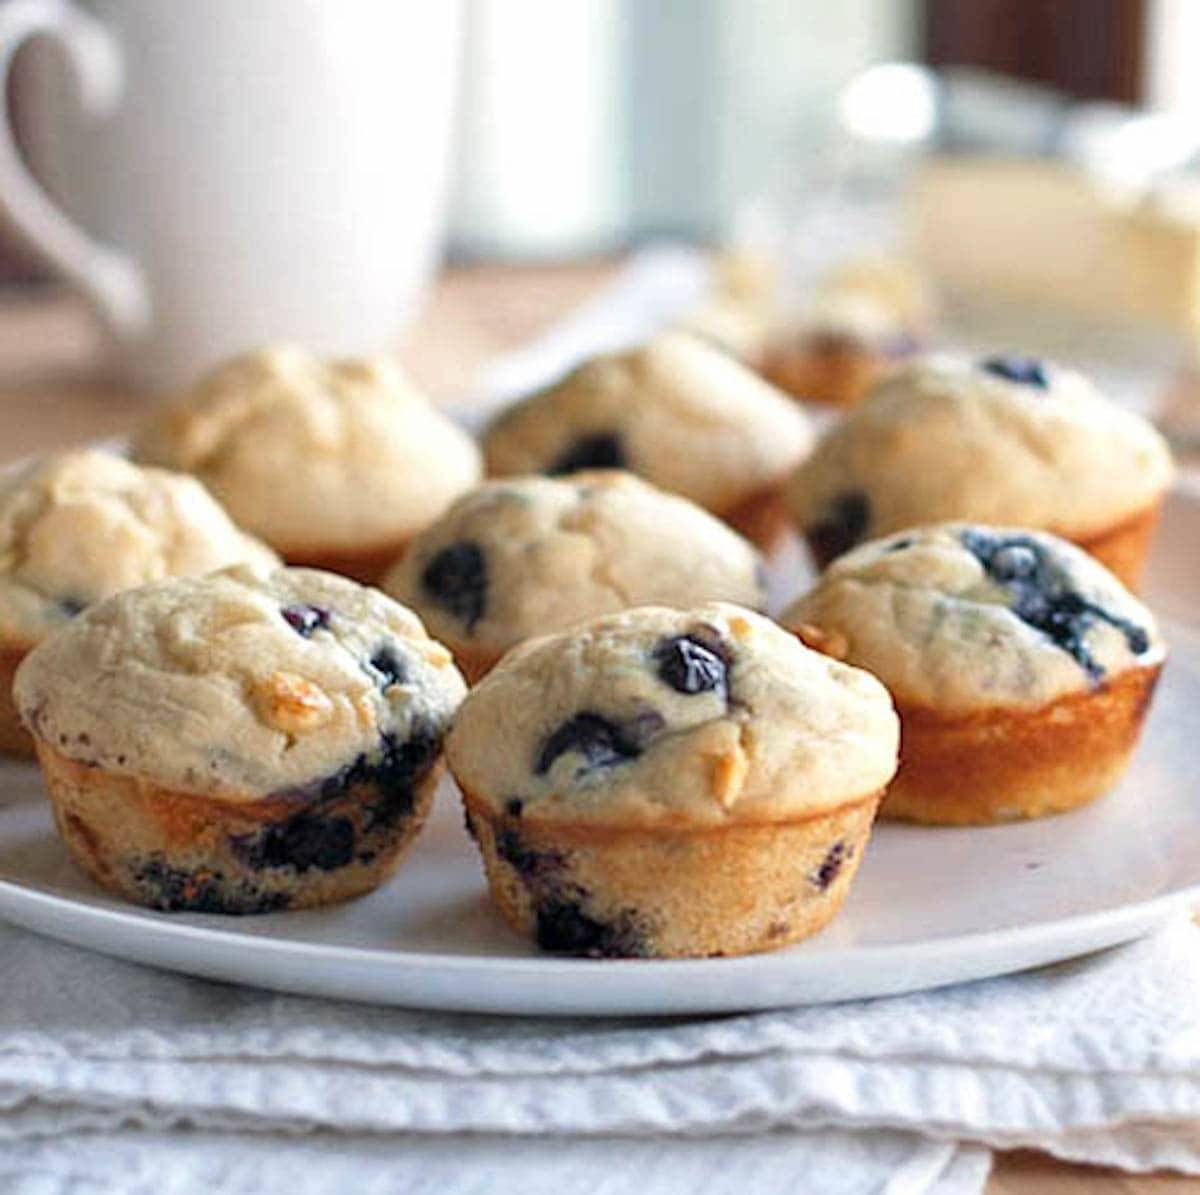 These white chocolate blueberry muffins are loaded with sweet juicy blueberries and white chocolate chips. Perfect for a cozy Saturday morning. | pinchofyum.com